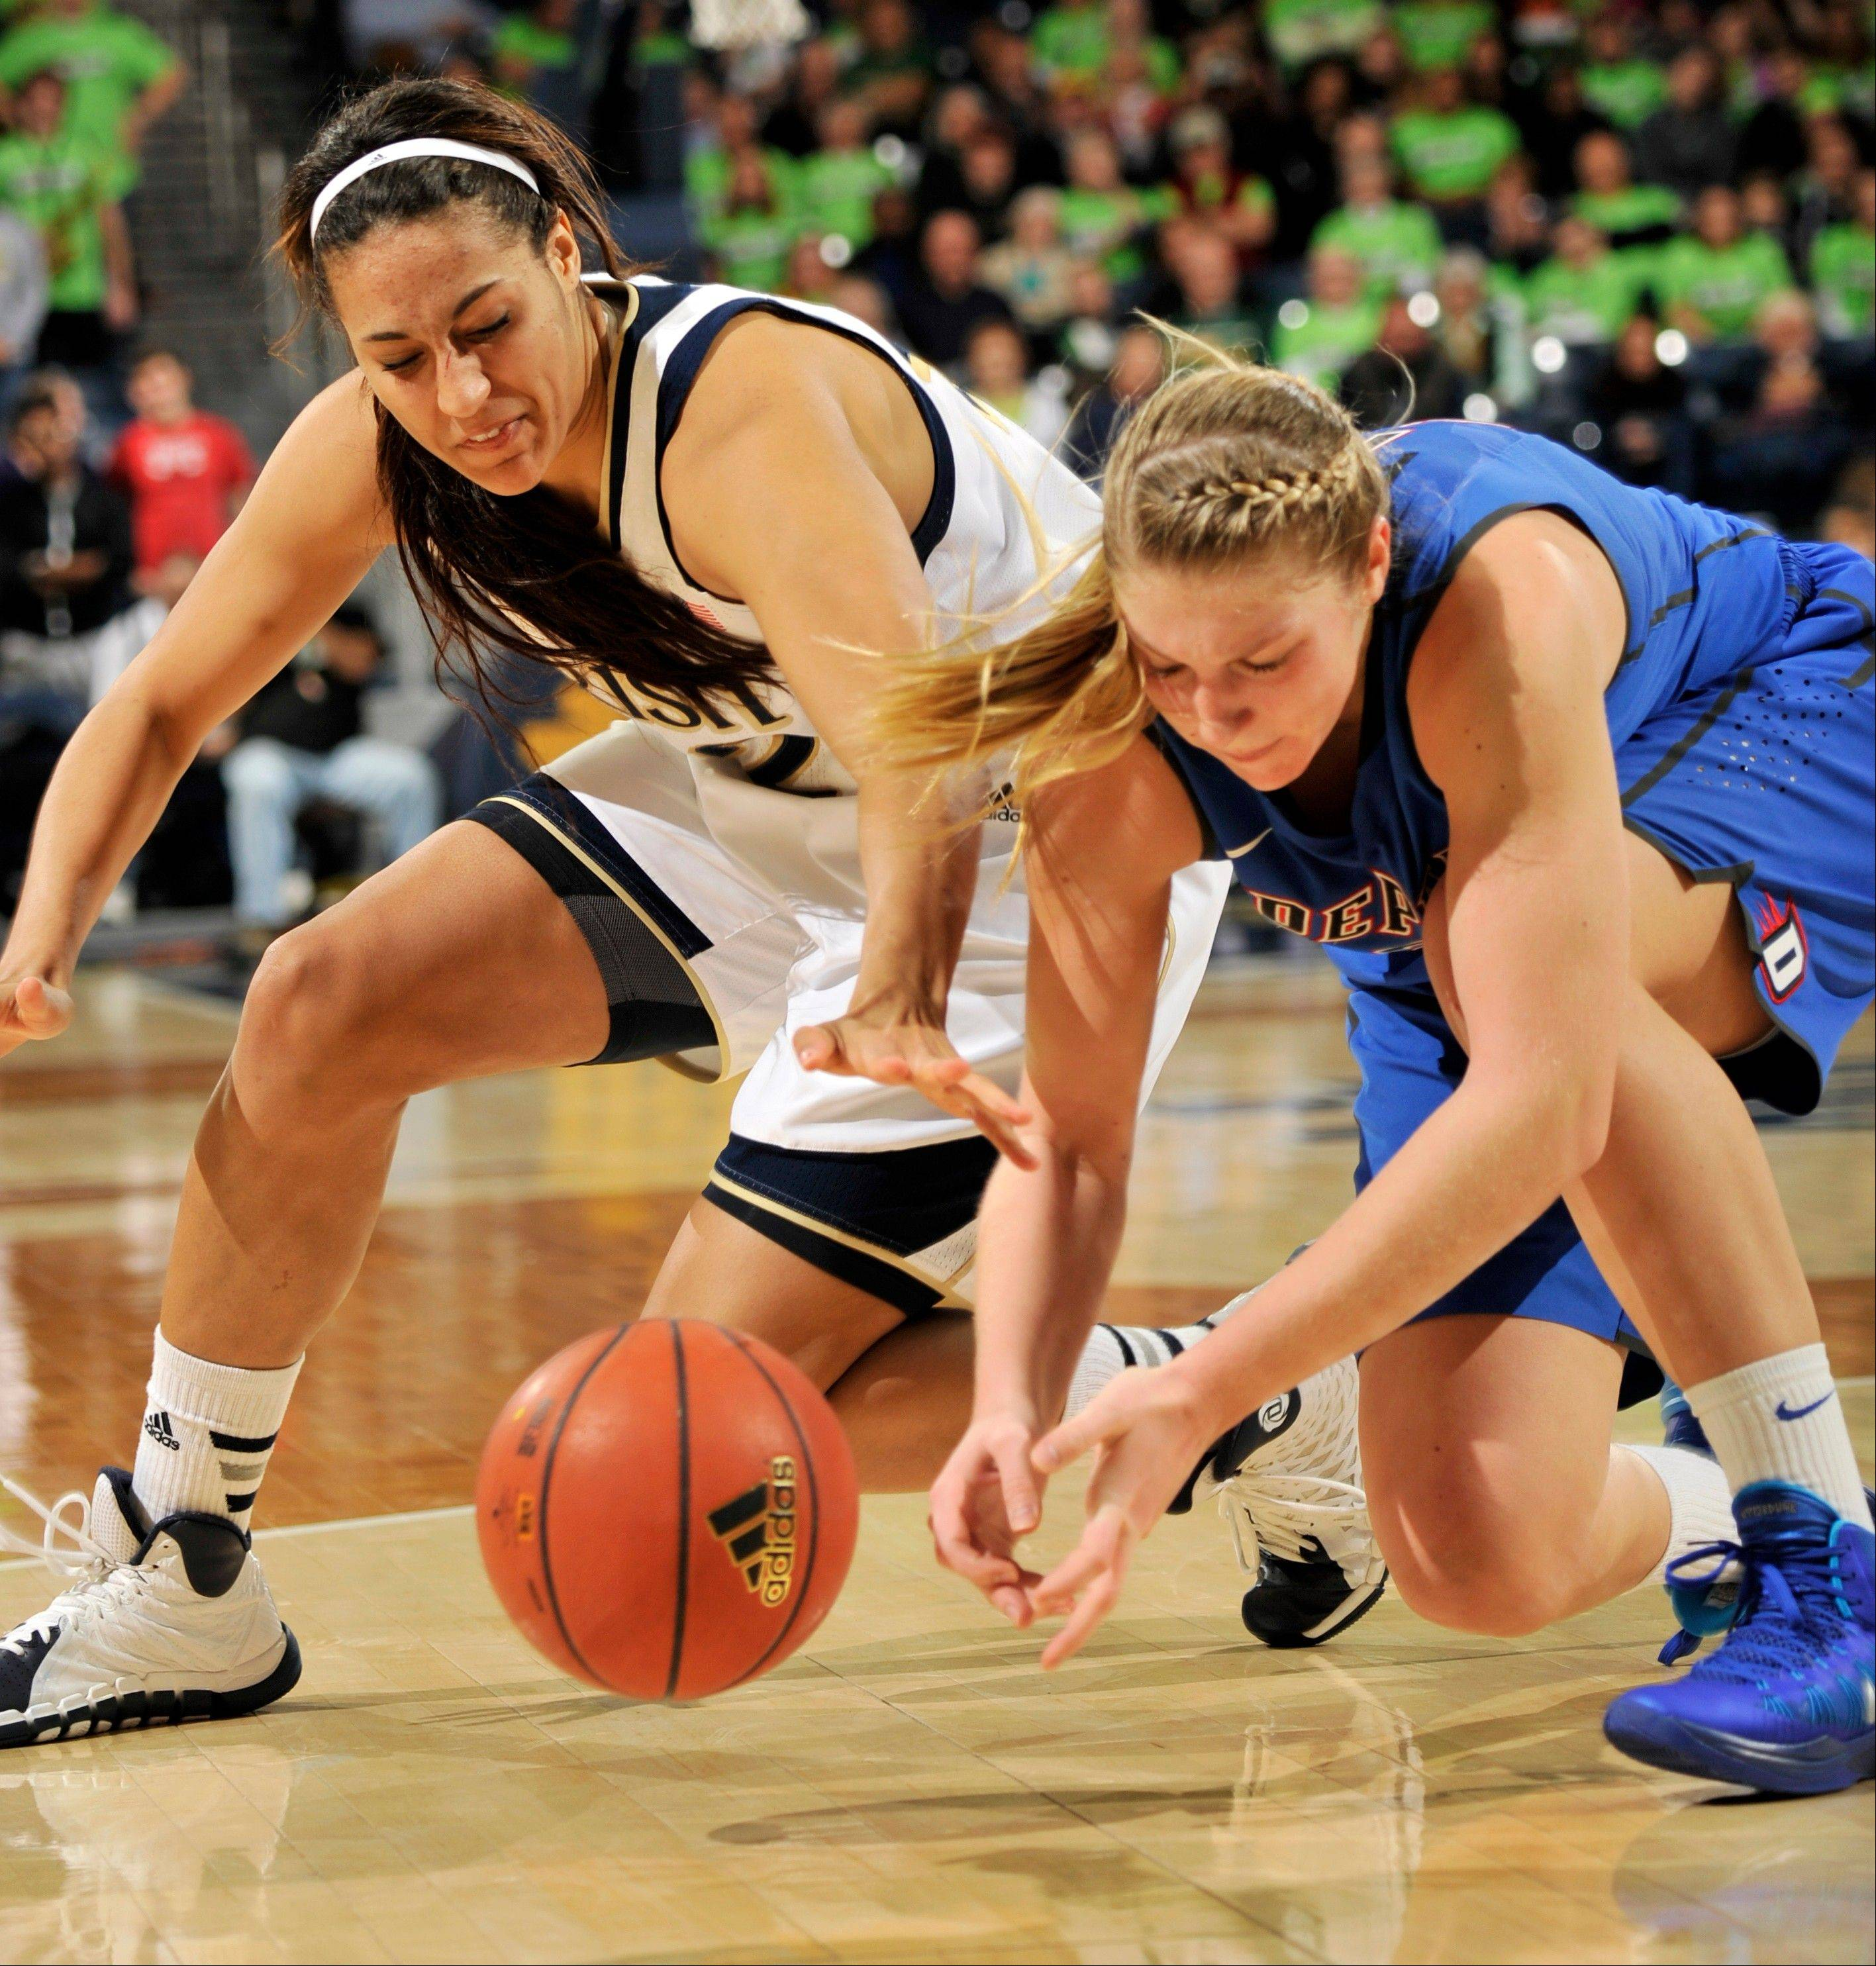 Notre Dame forward Taya Reimer, left, and DePaul guard Megan Podkowa battle for a loose ball during the second half of an NCAA college basketball game, Tuesday, Nov. 26, 2013, in South Bend, Ind. Notre Dame won 92-76.